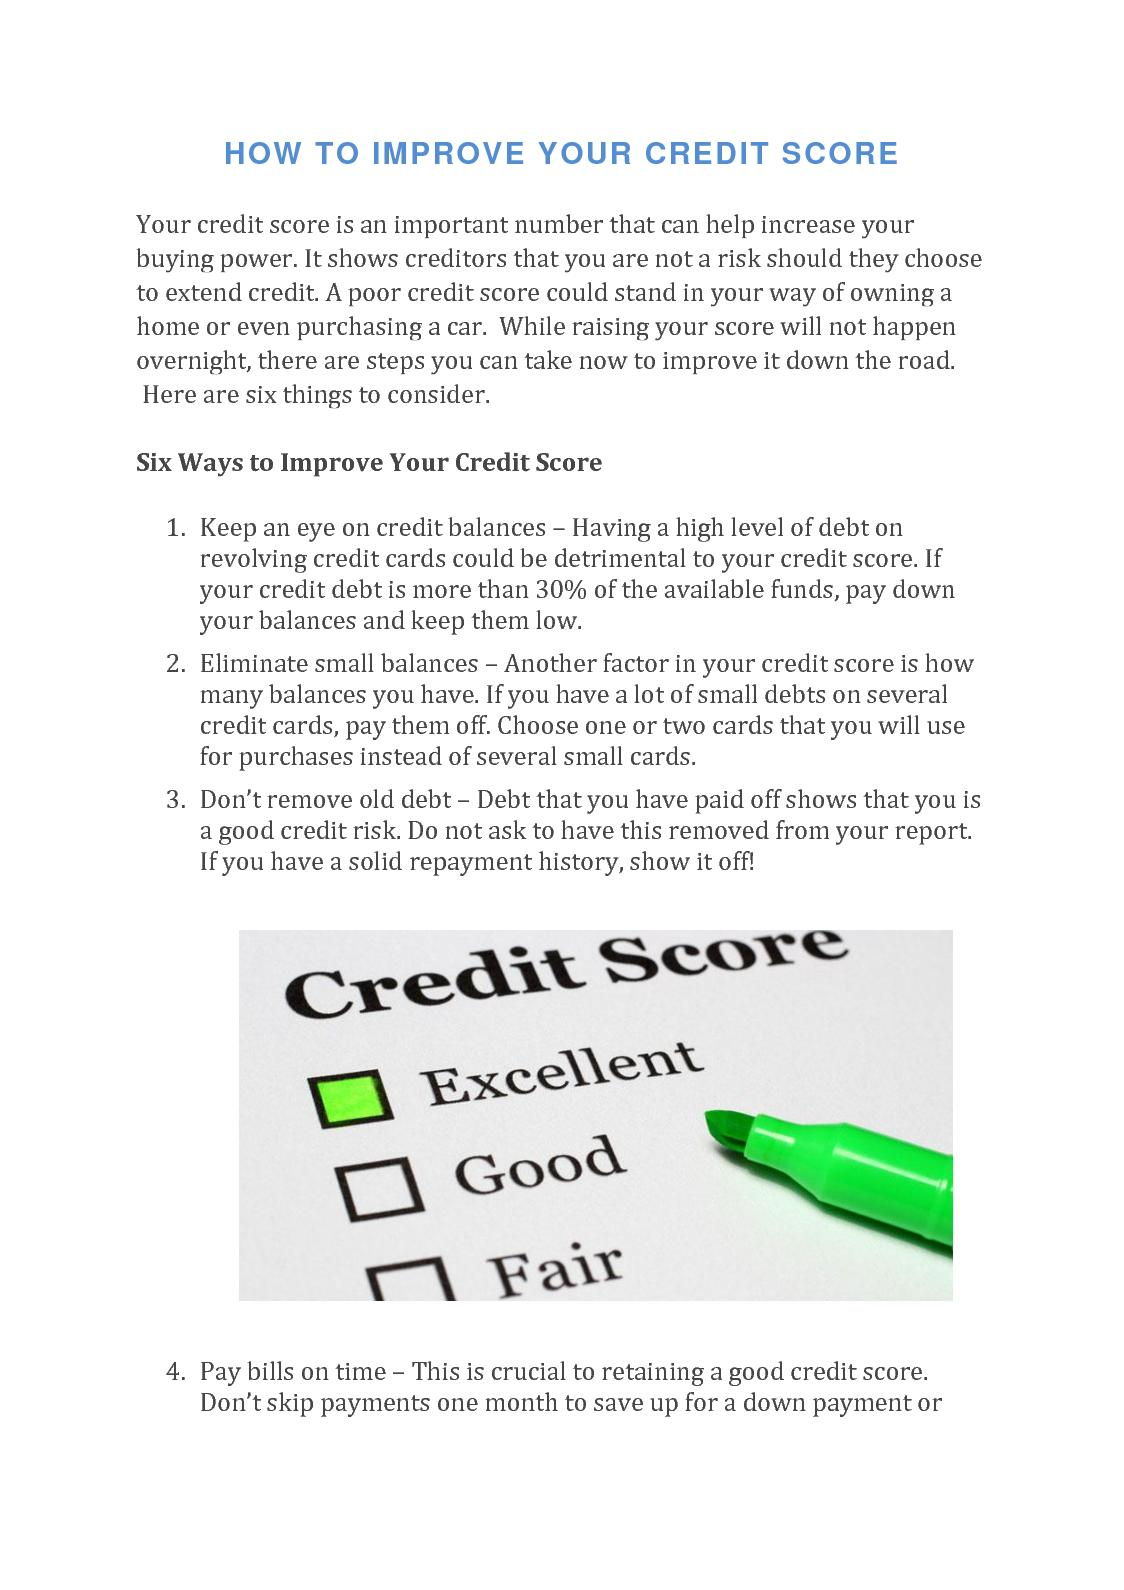 How to pick up your credit score fast